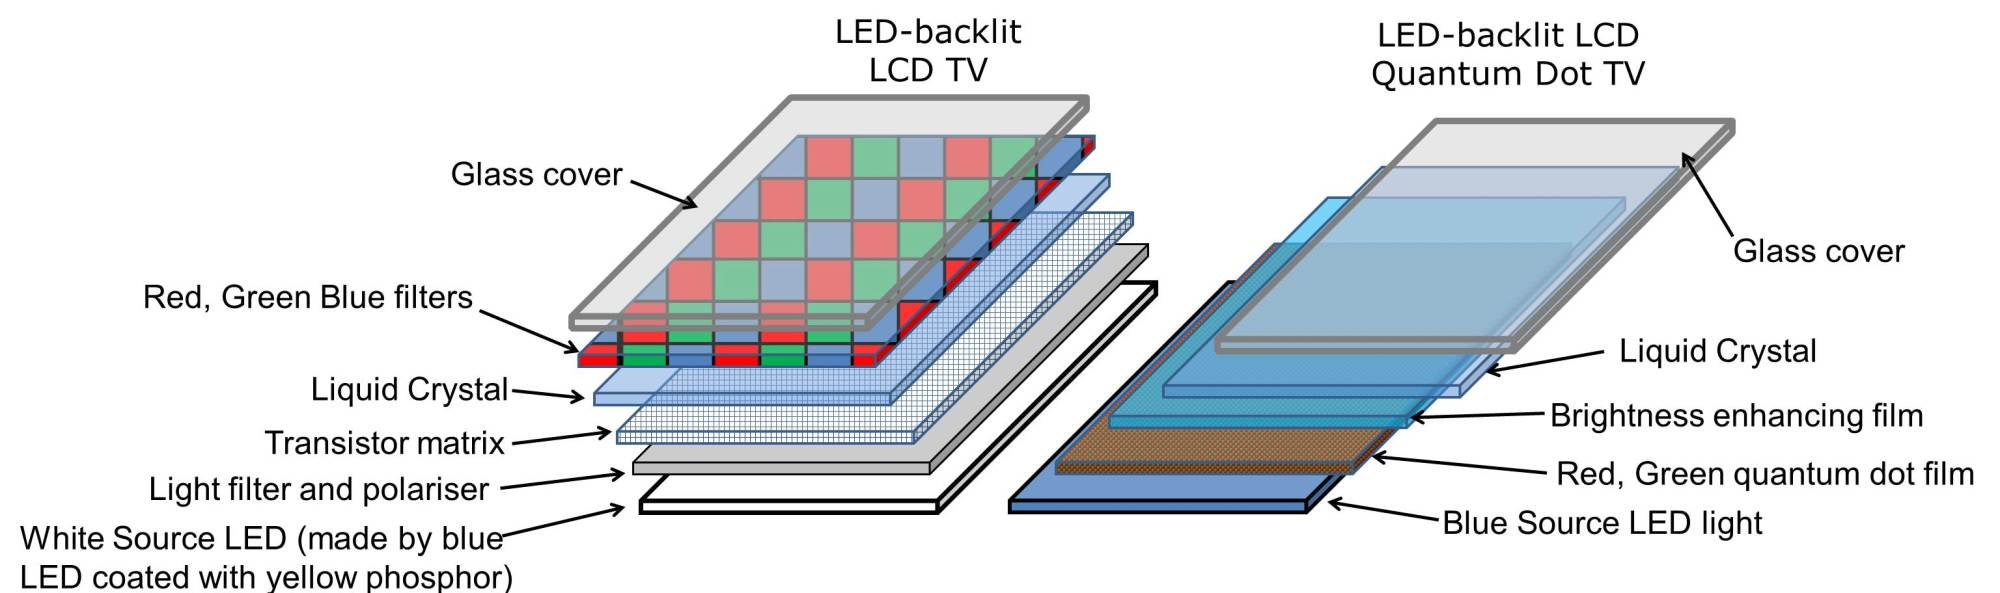 hight resolution of schematic showing comparison of quantum dot enhanced lcd tv left compared to standard lcd